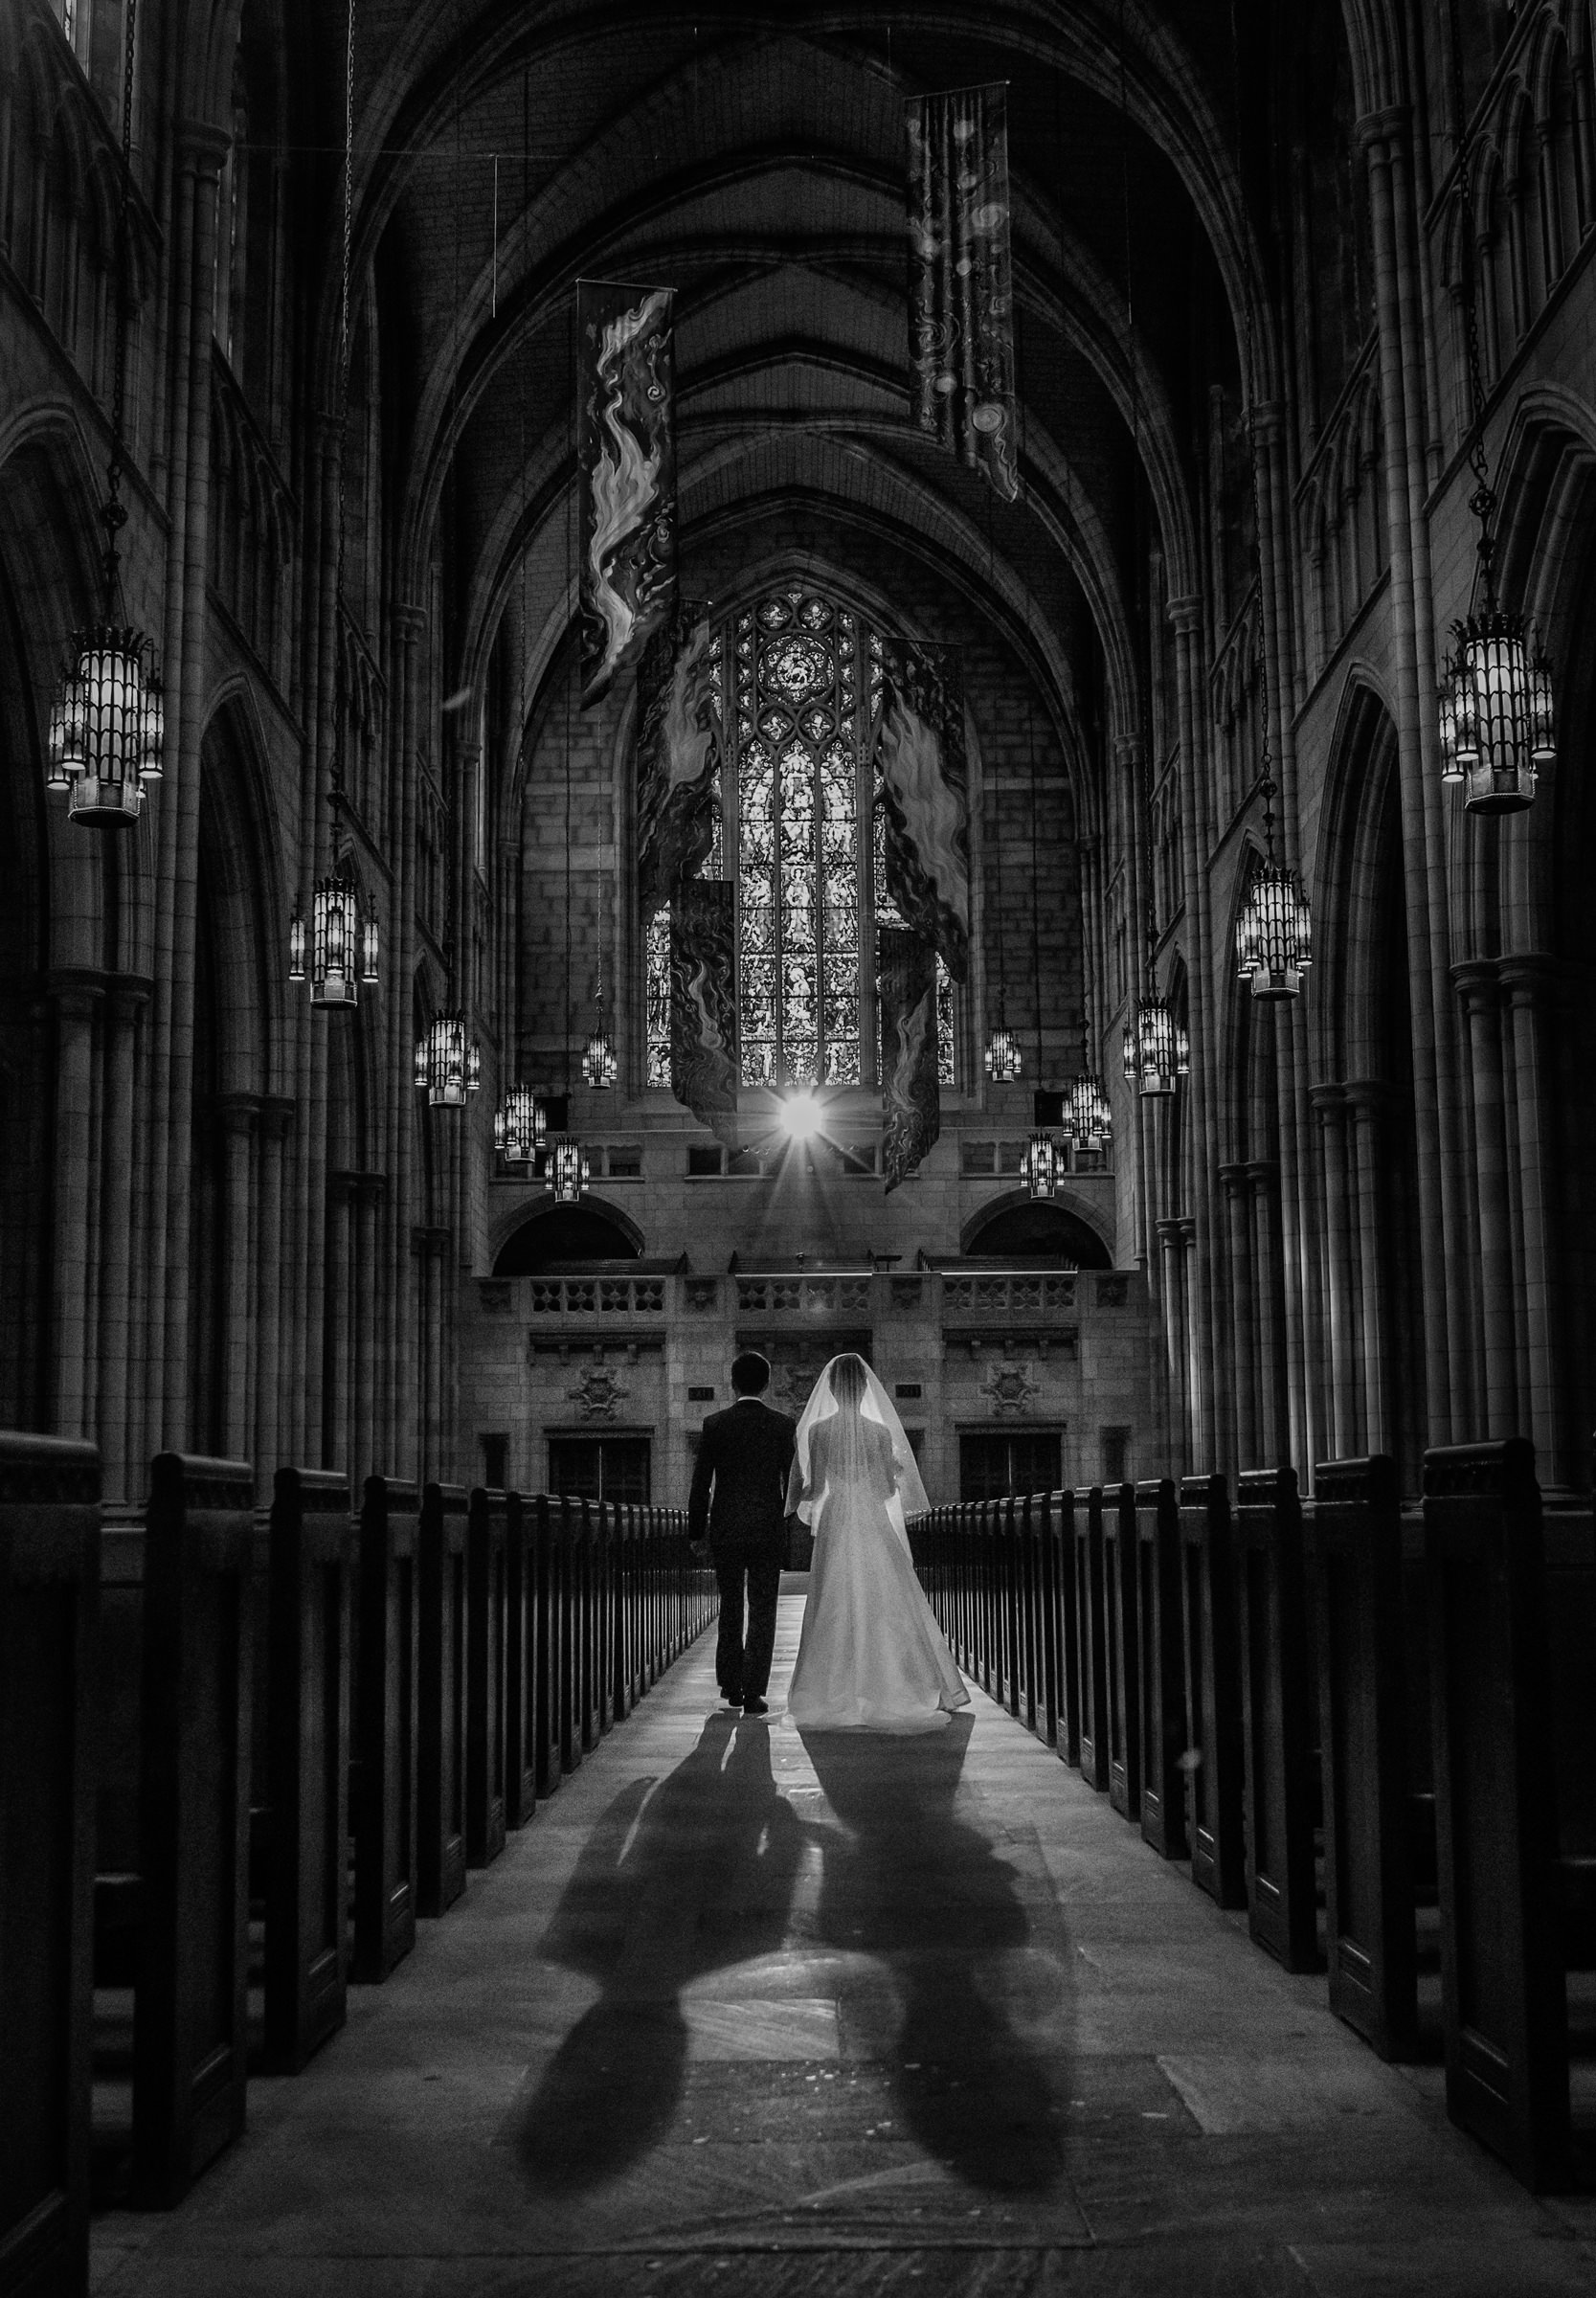 bride-and-dad-walking-down-aisle-cathedral-by-susan-stripling-nyc-wedding-photographer